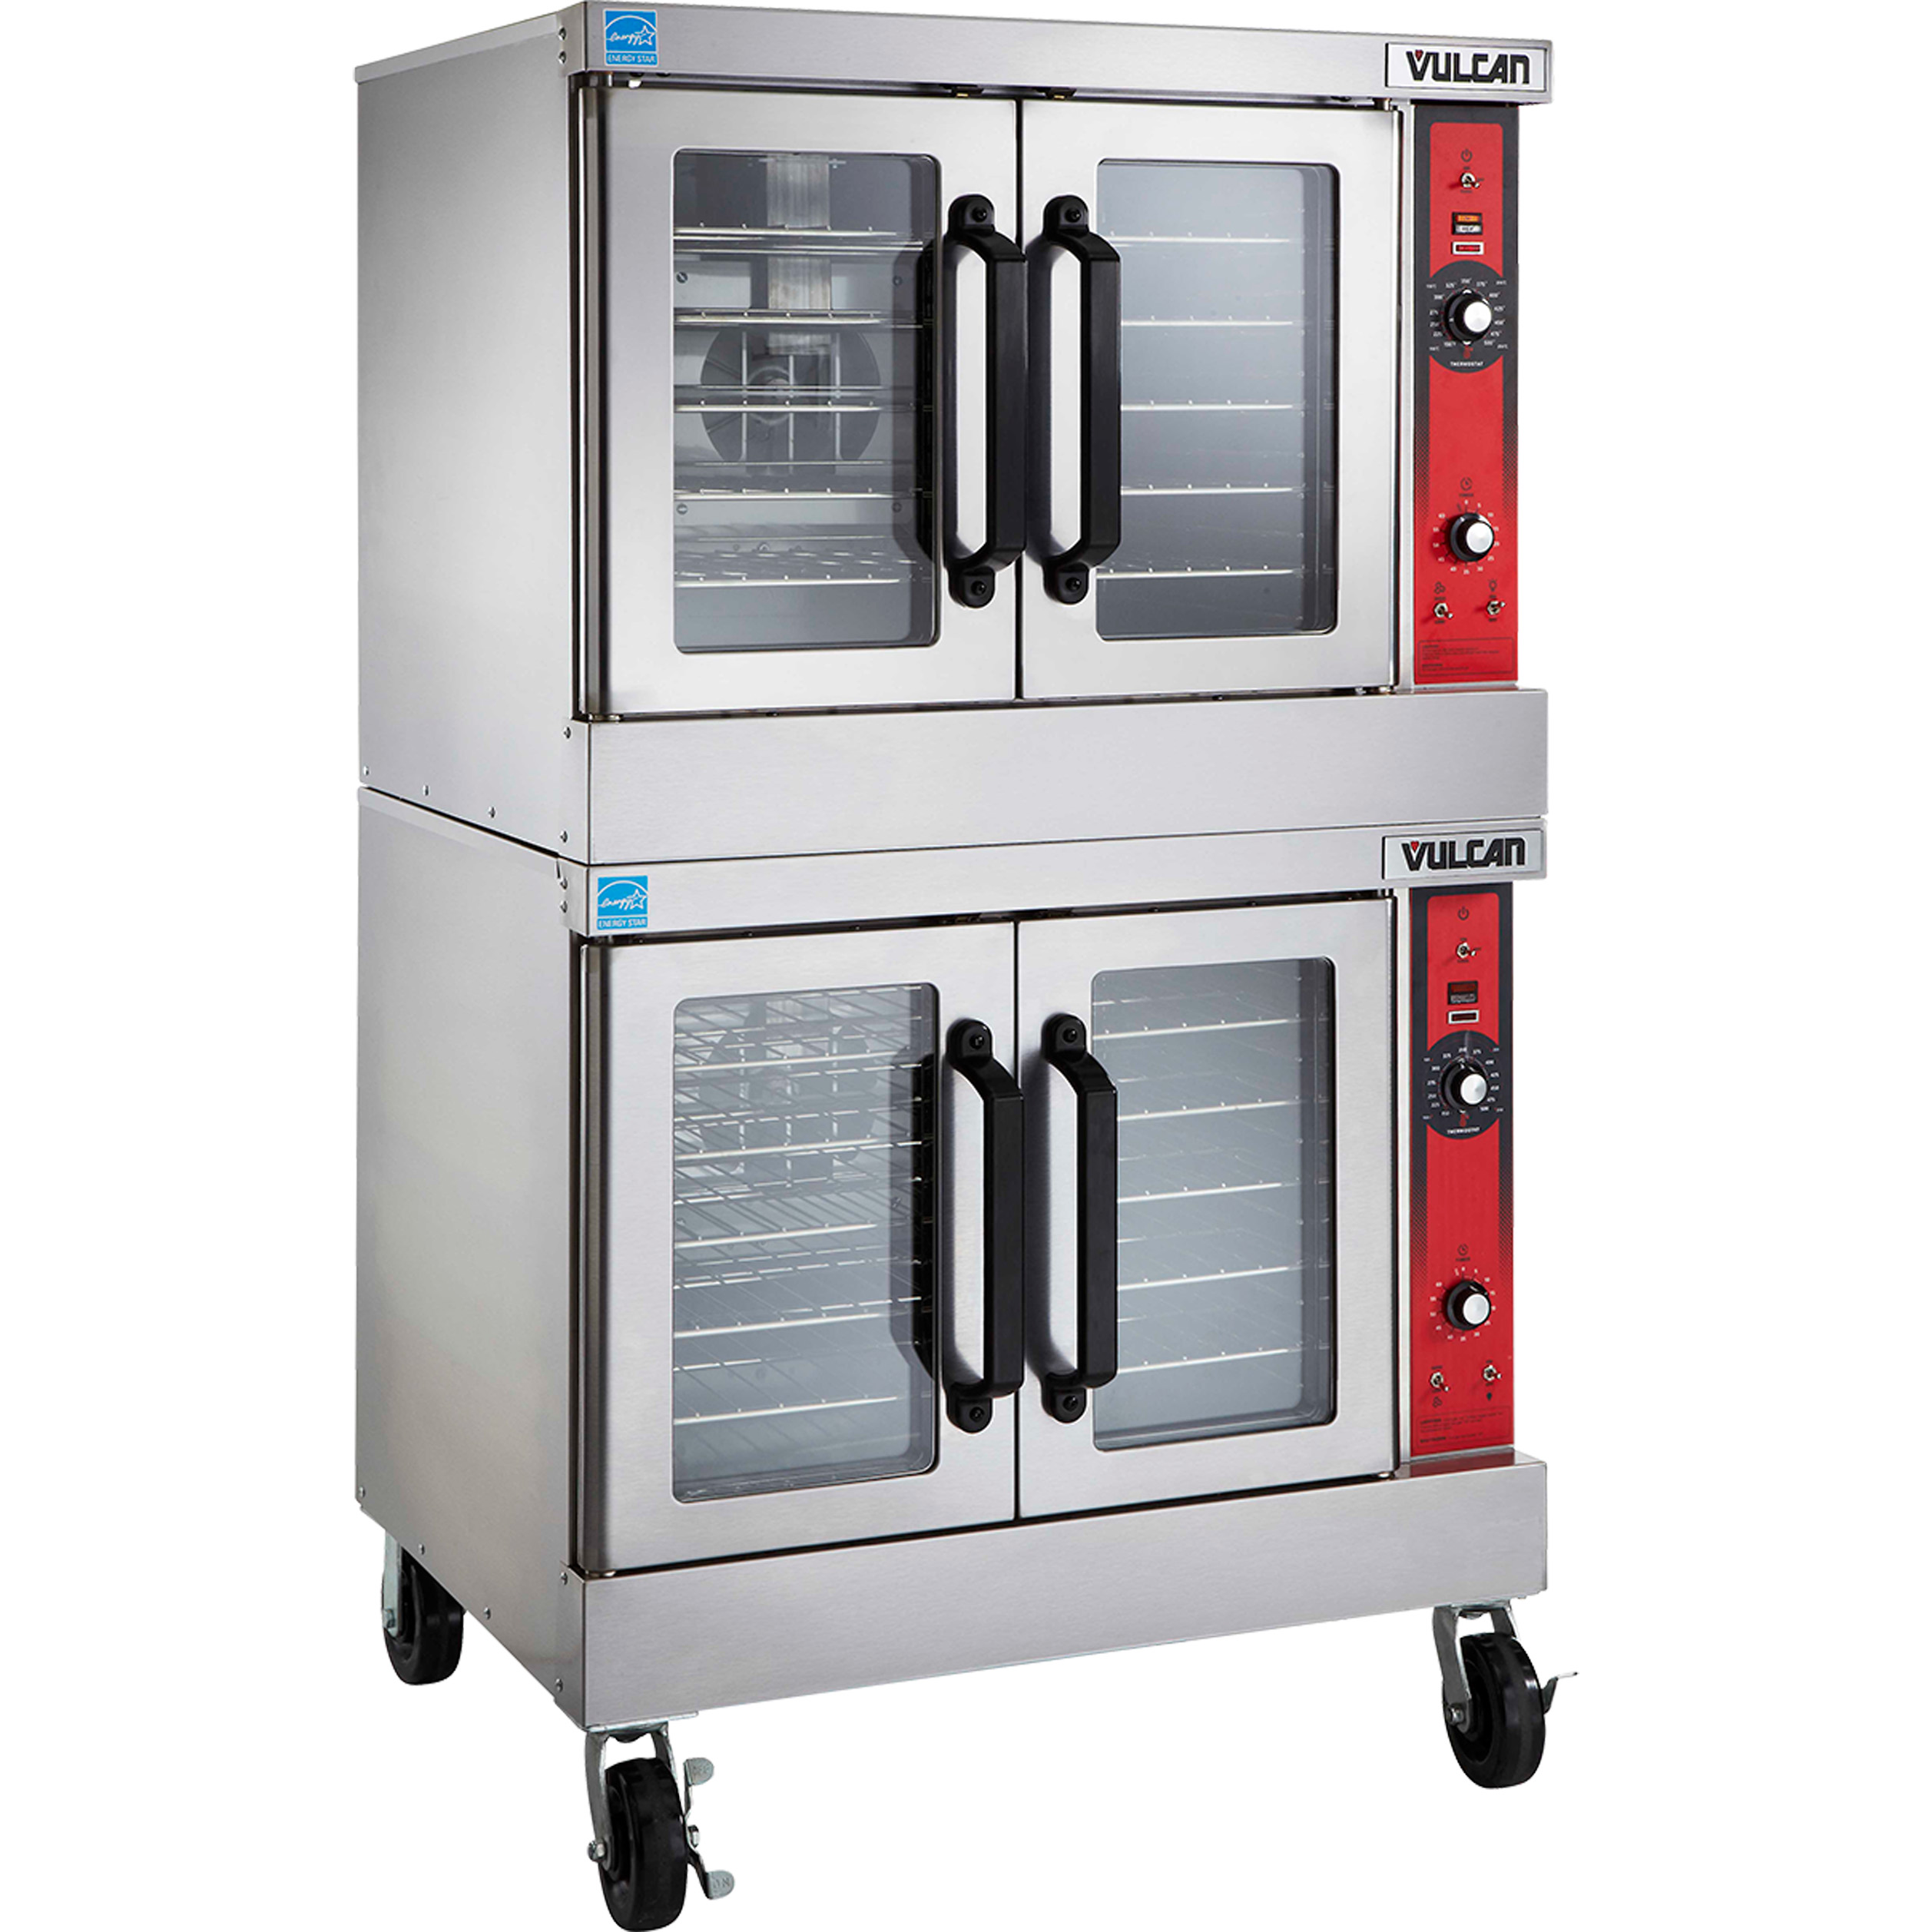 Vulcan VC66EC convection oven, electric